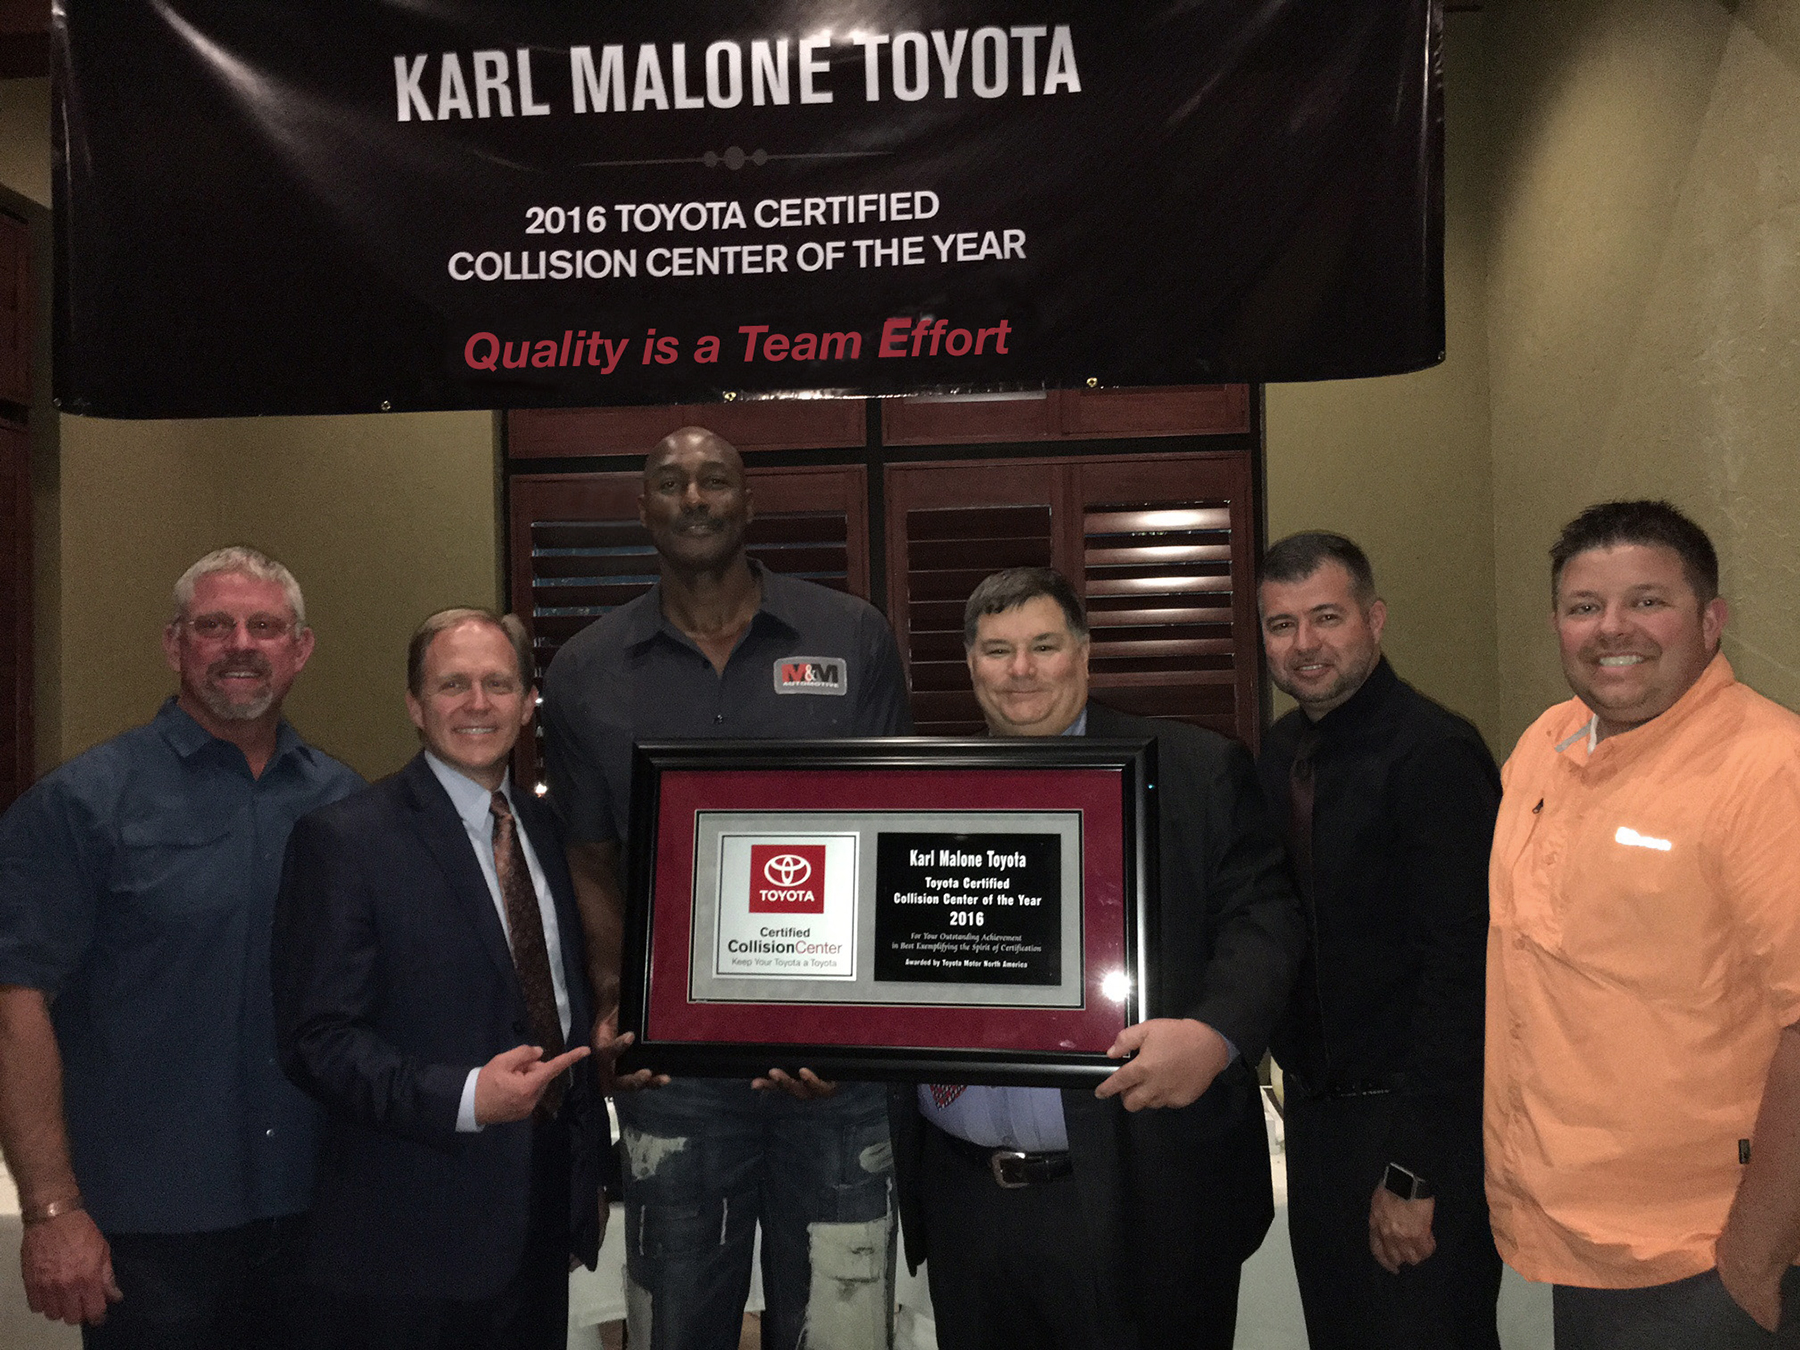 Karl Maloneu0027s Body And Paint And Puente Hills Auto Body Named Collision  Centers Of The Year